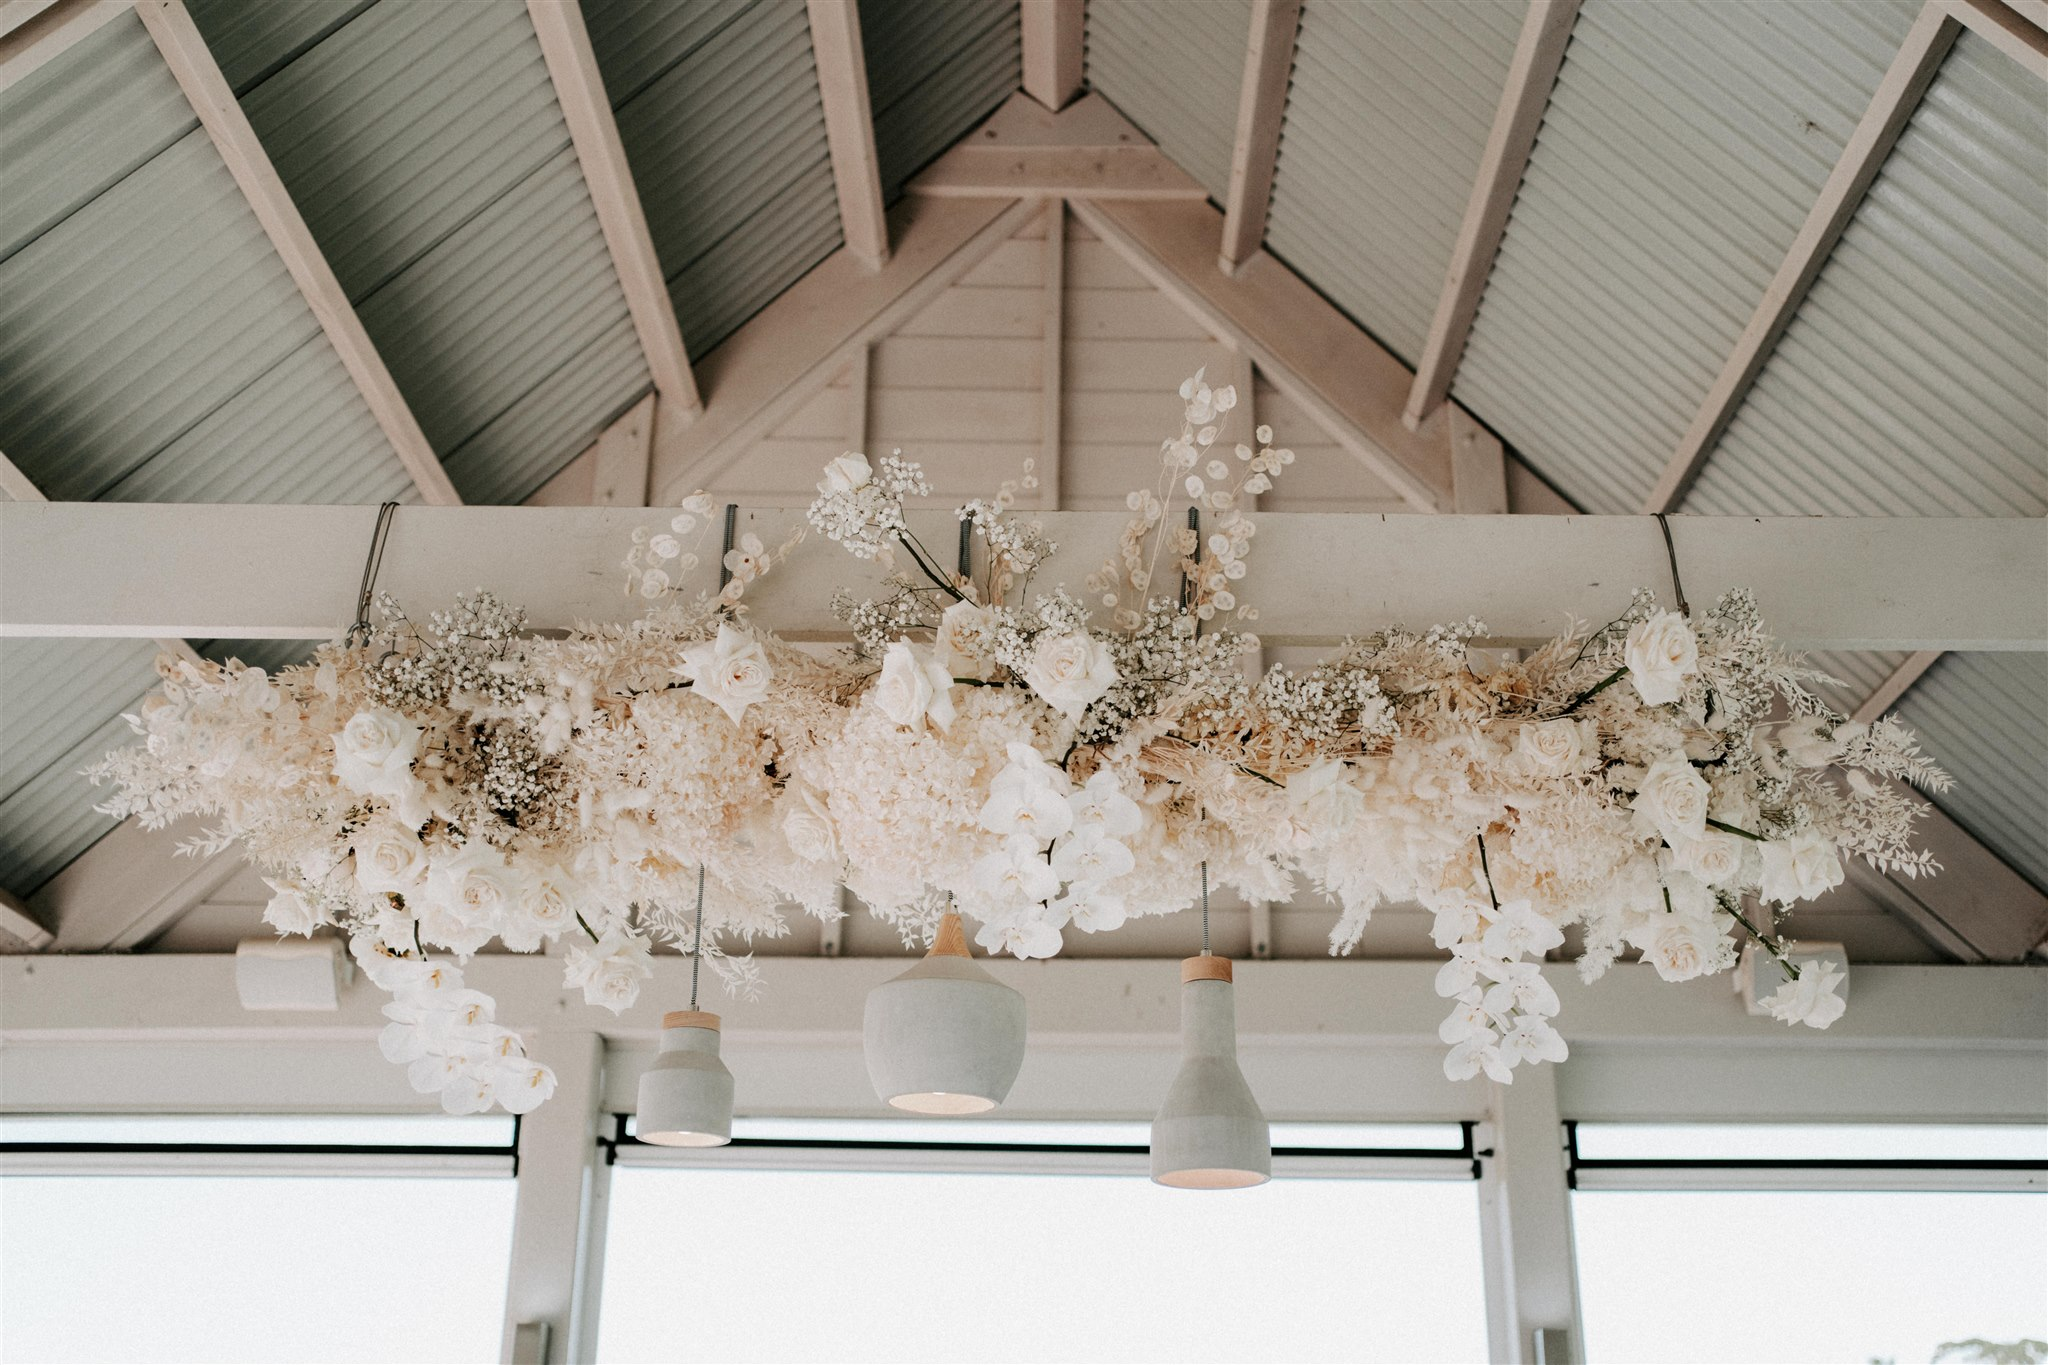 Hanging installation feature orchids and textured elements